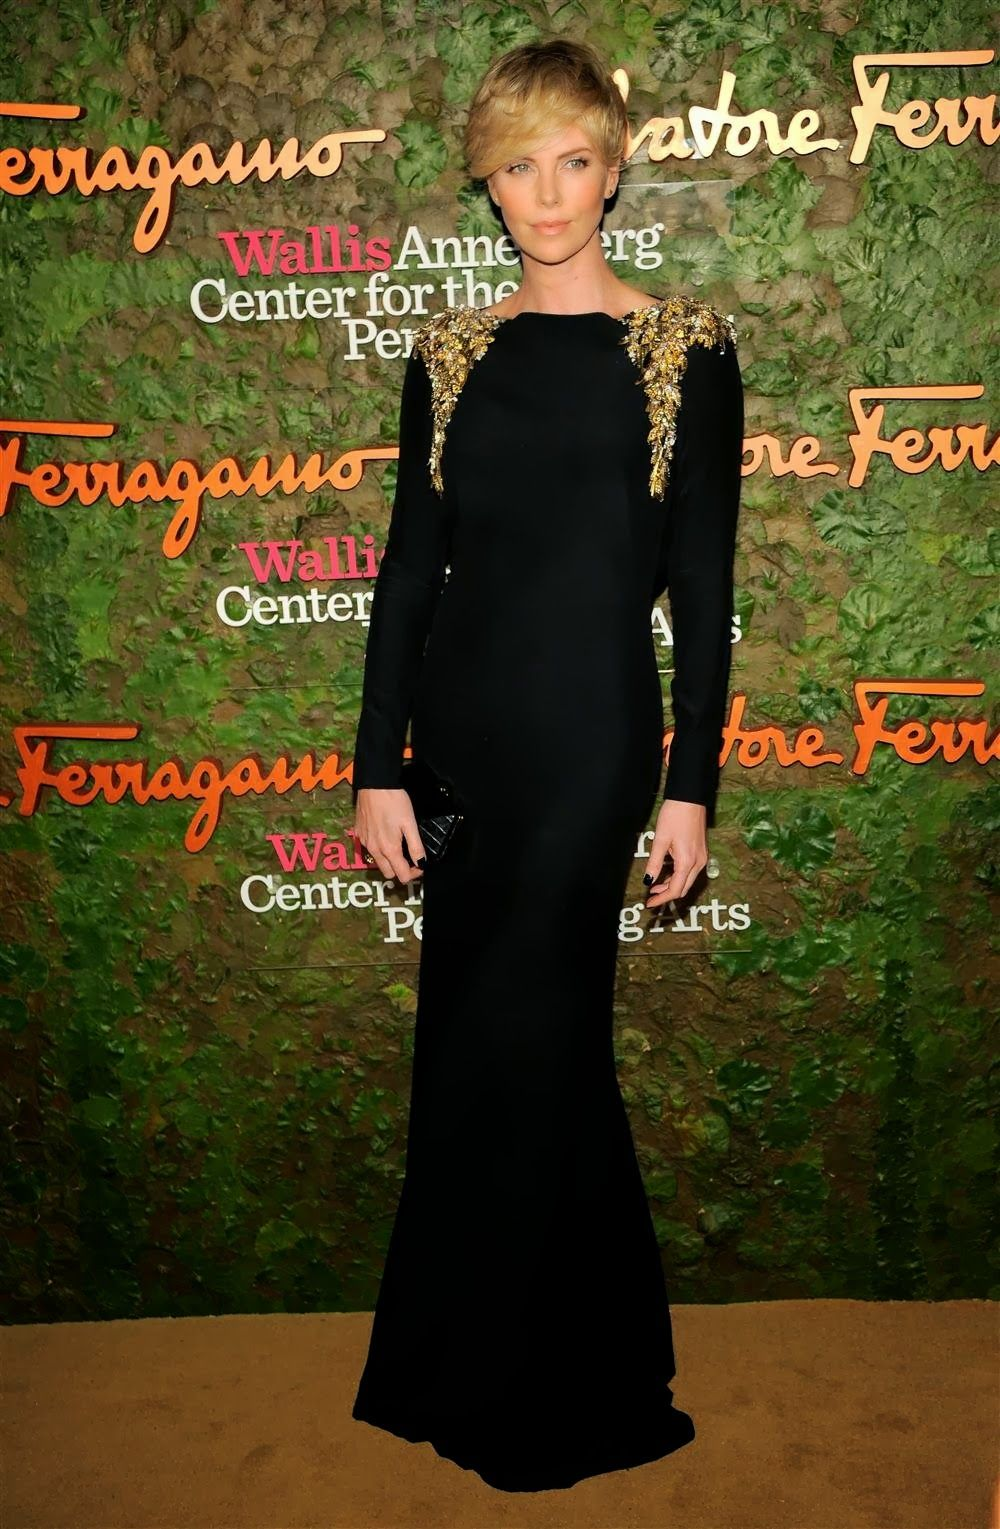 Charlize Theron in Alexander McQueen at the Wallis Annenberg Center for the Performing Arts Inaugural Gala (October 17, 2013).